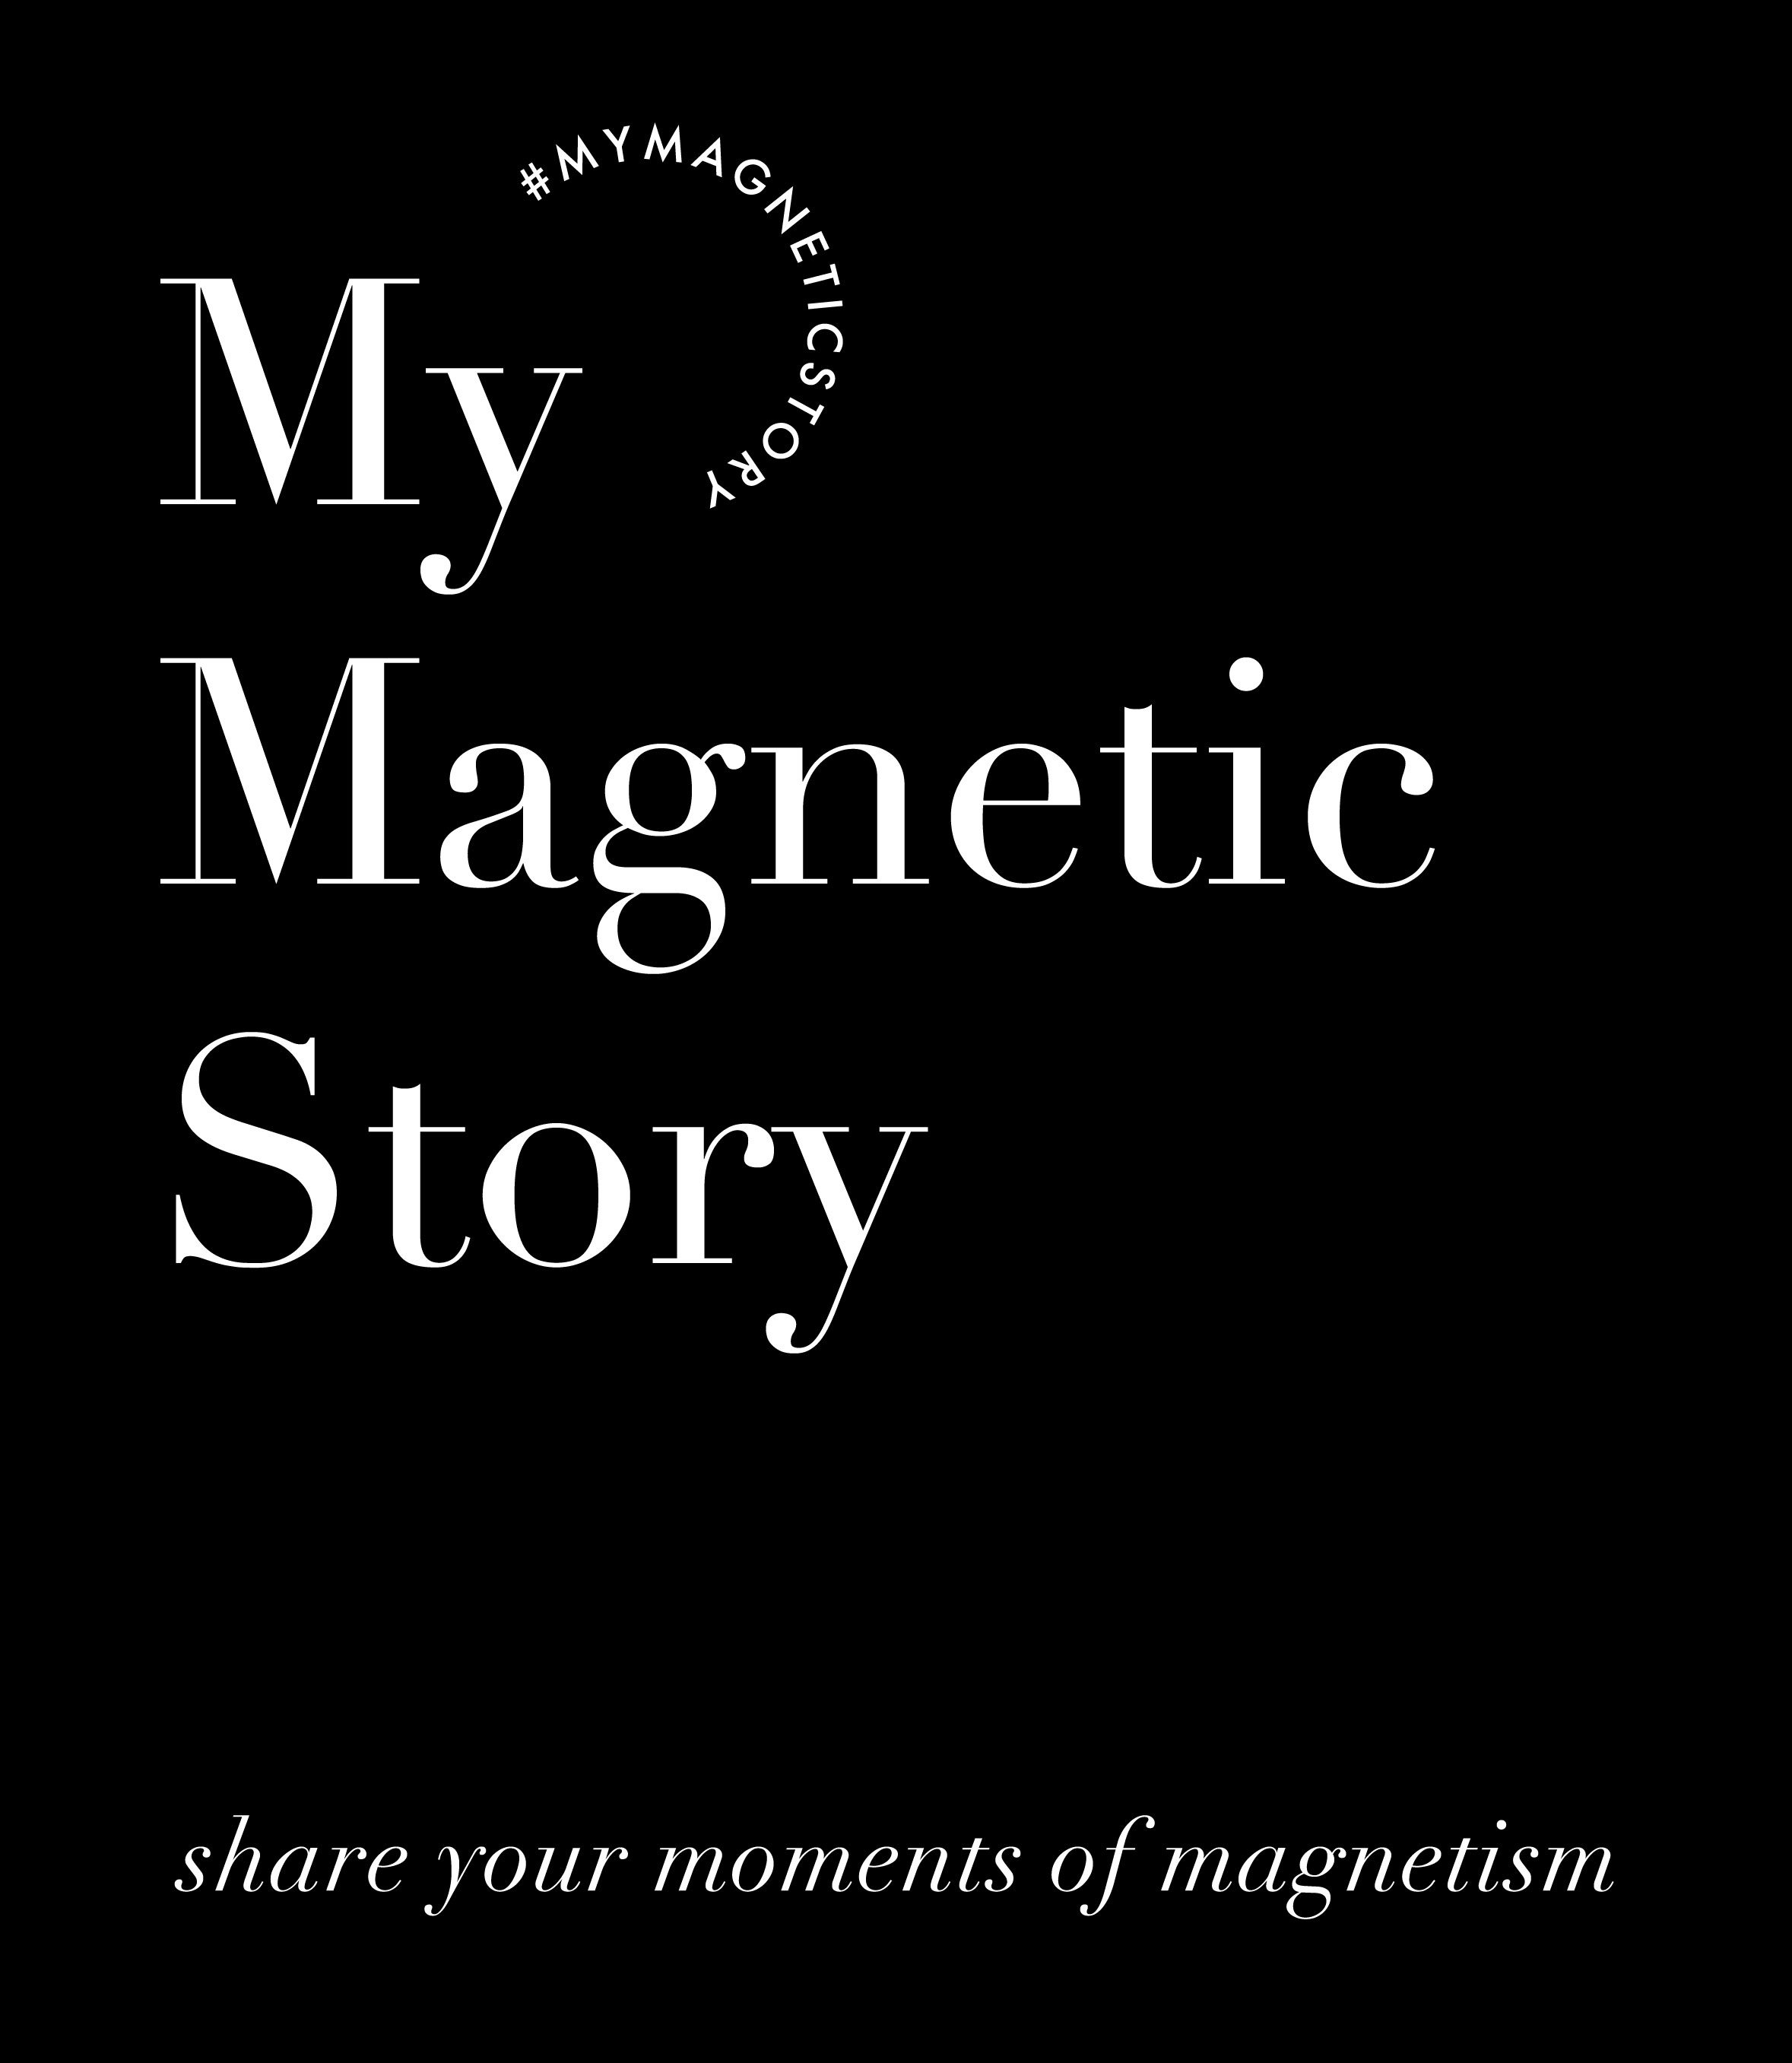 """#MyMagneticStory - """"I started Uplevel Next Level as soon as it came out + it's been a great refocus of my internal presence + dialogues. Even this week already big manifestations coming through - with Work my list was an average of 20+ client bookings per week + selling out events. If I sell 1 more ticket this week I've well surpassed that goal with 23 sessions + 2 overbooked events.Thank-you for this magic ✨Love ya. I'm here for ya. Keep going. Please keep going!"""